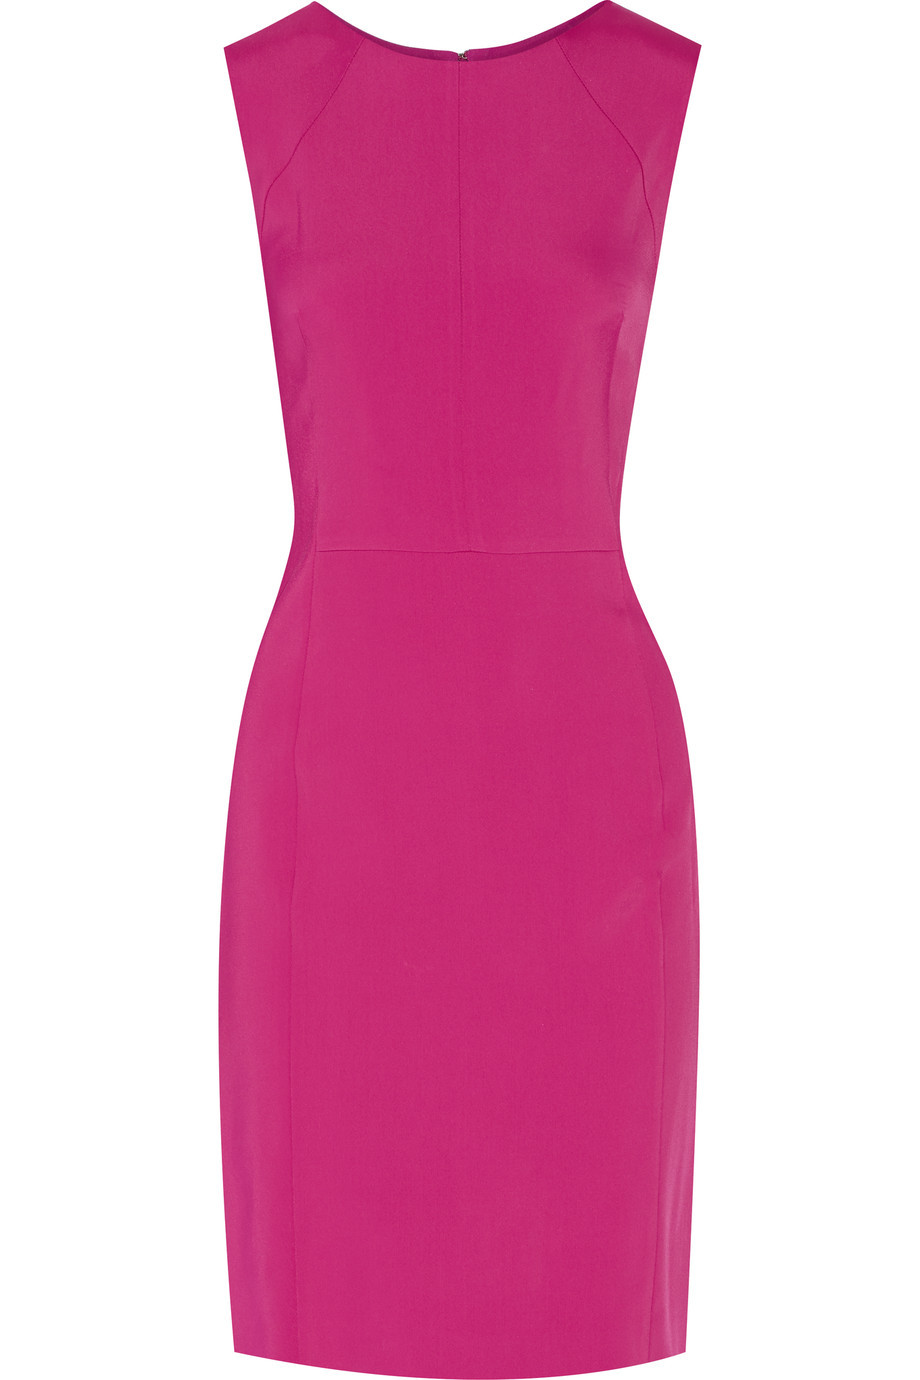 Cady Dress Magenta - style: shift; fit: tailored/fitted; pattern: plain; sleeve style: sleeveless; predominant colour: hot pink; occasions: evening; length: just above the knee; fibres: viscose/rayon - stretch; neckline: crew; sleeve length: sleeveless; pattern type: fabric; texture group: other - light to midweight; season: s/s 2016; wardrobe: event